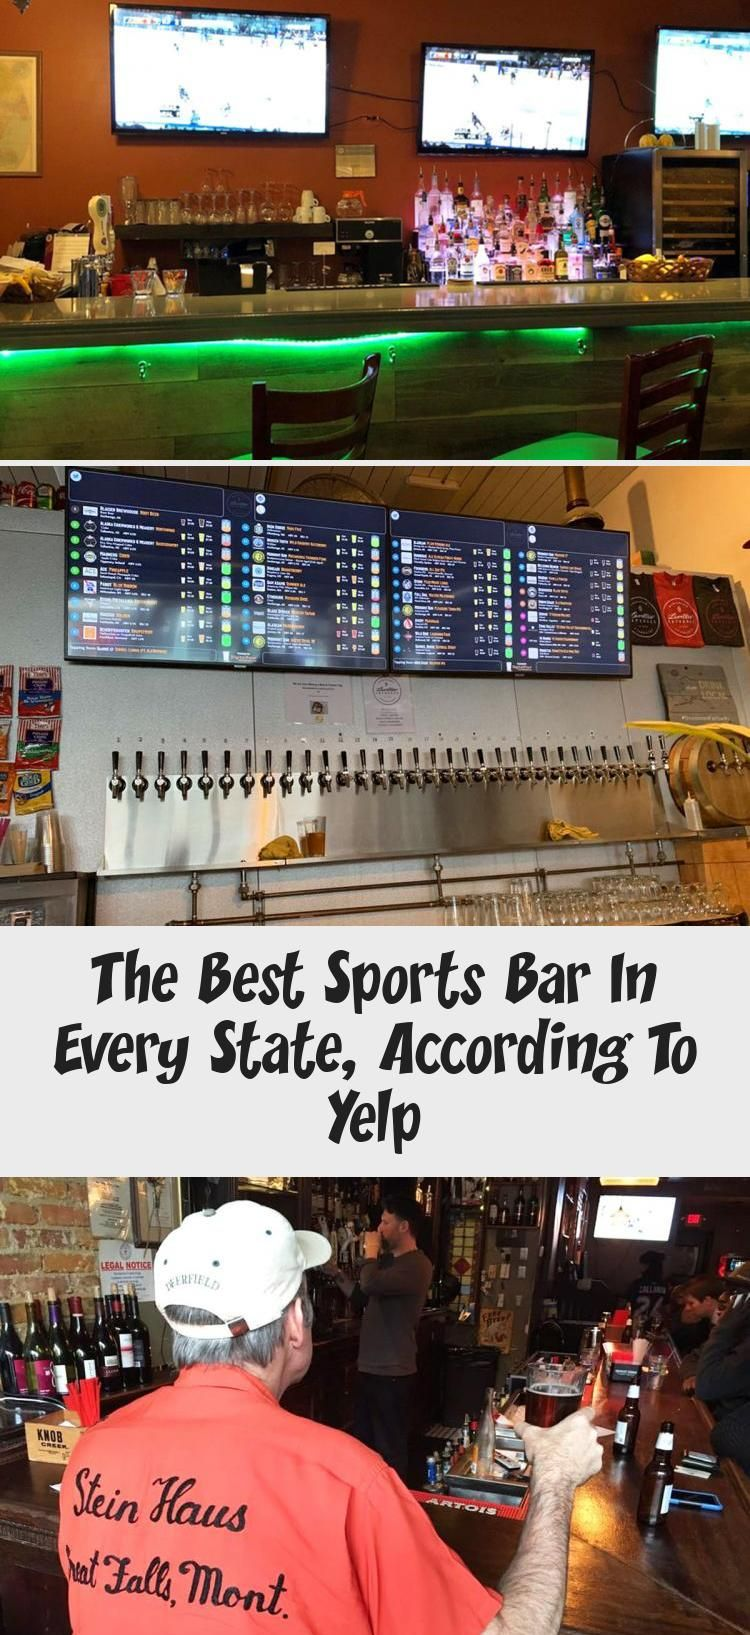 The Best Sports Bar In Every State, According To Yelp in